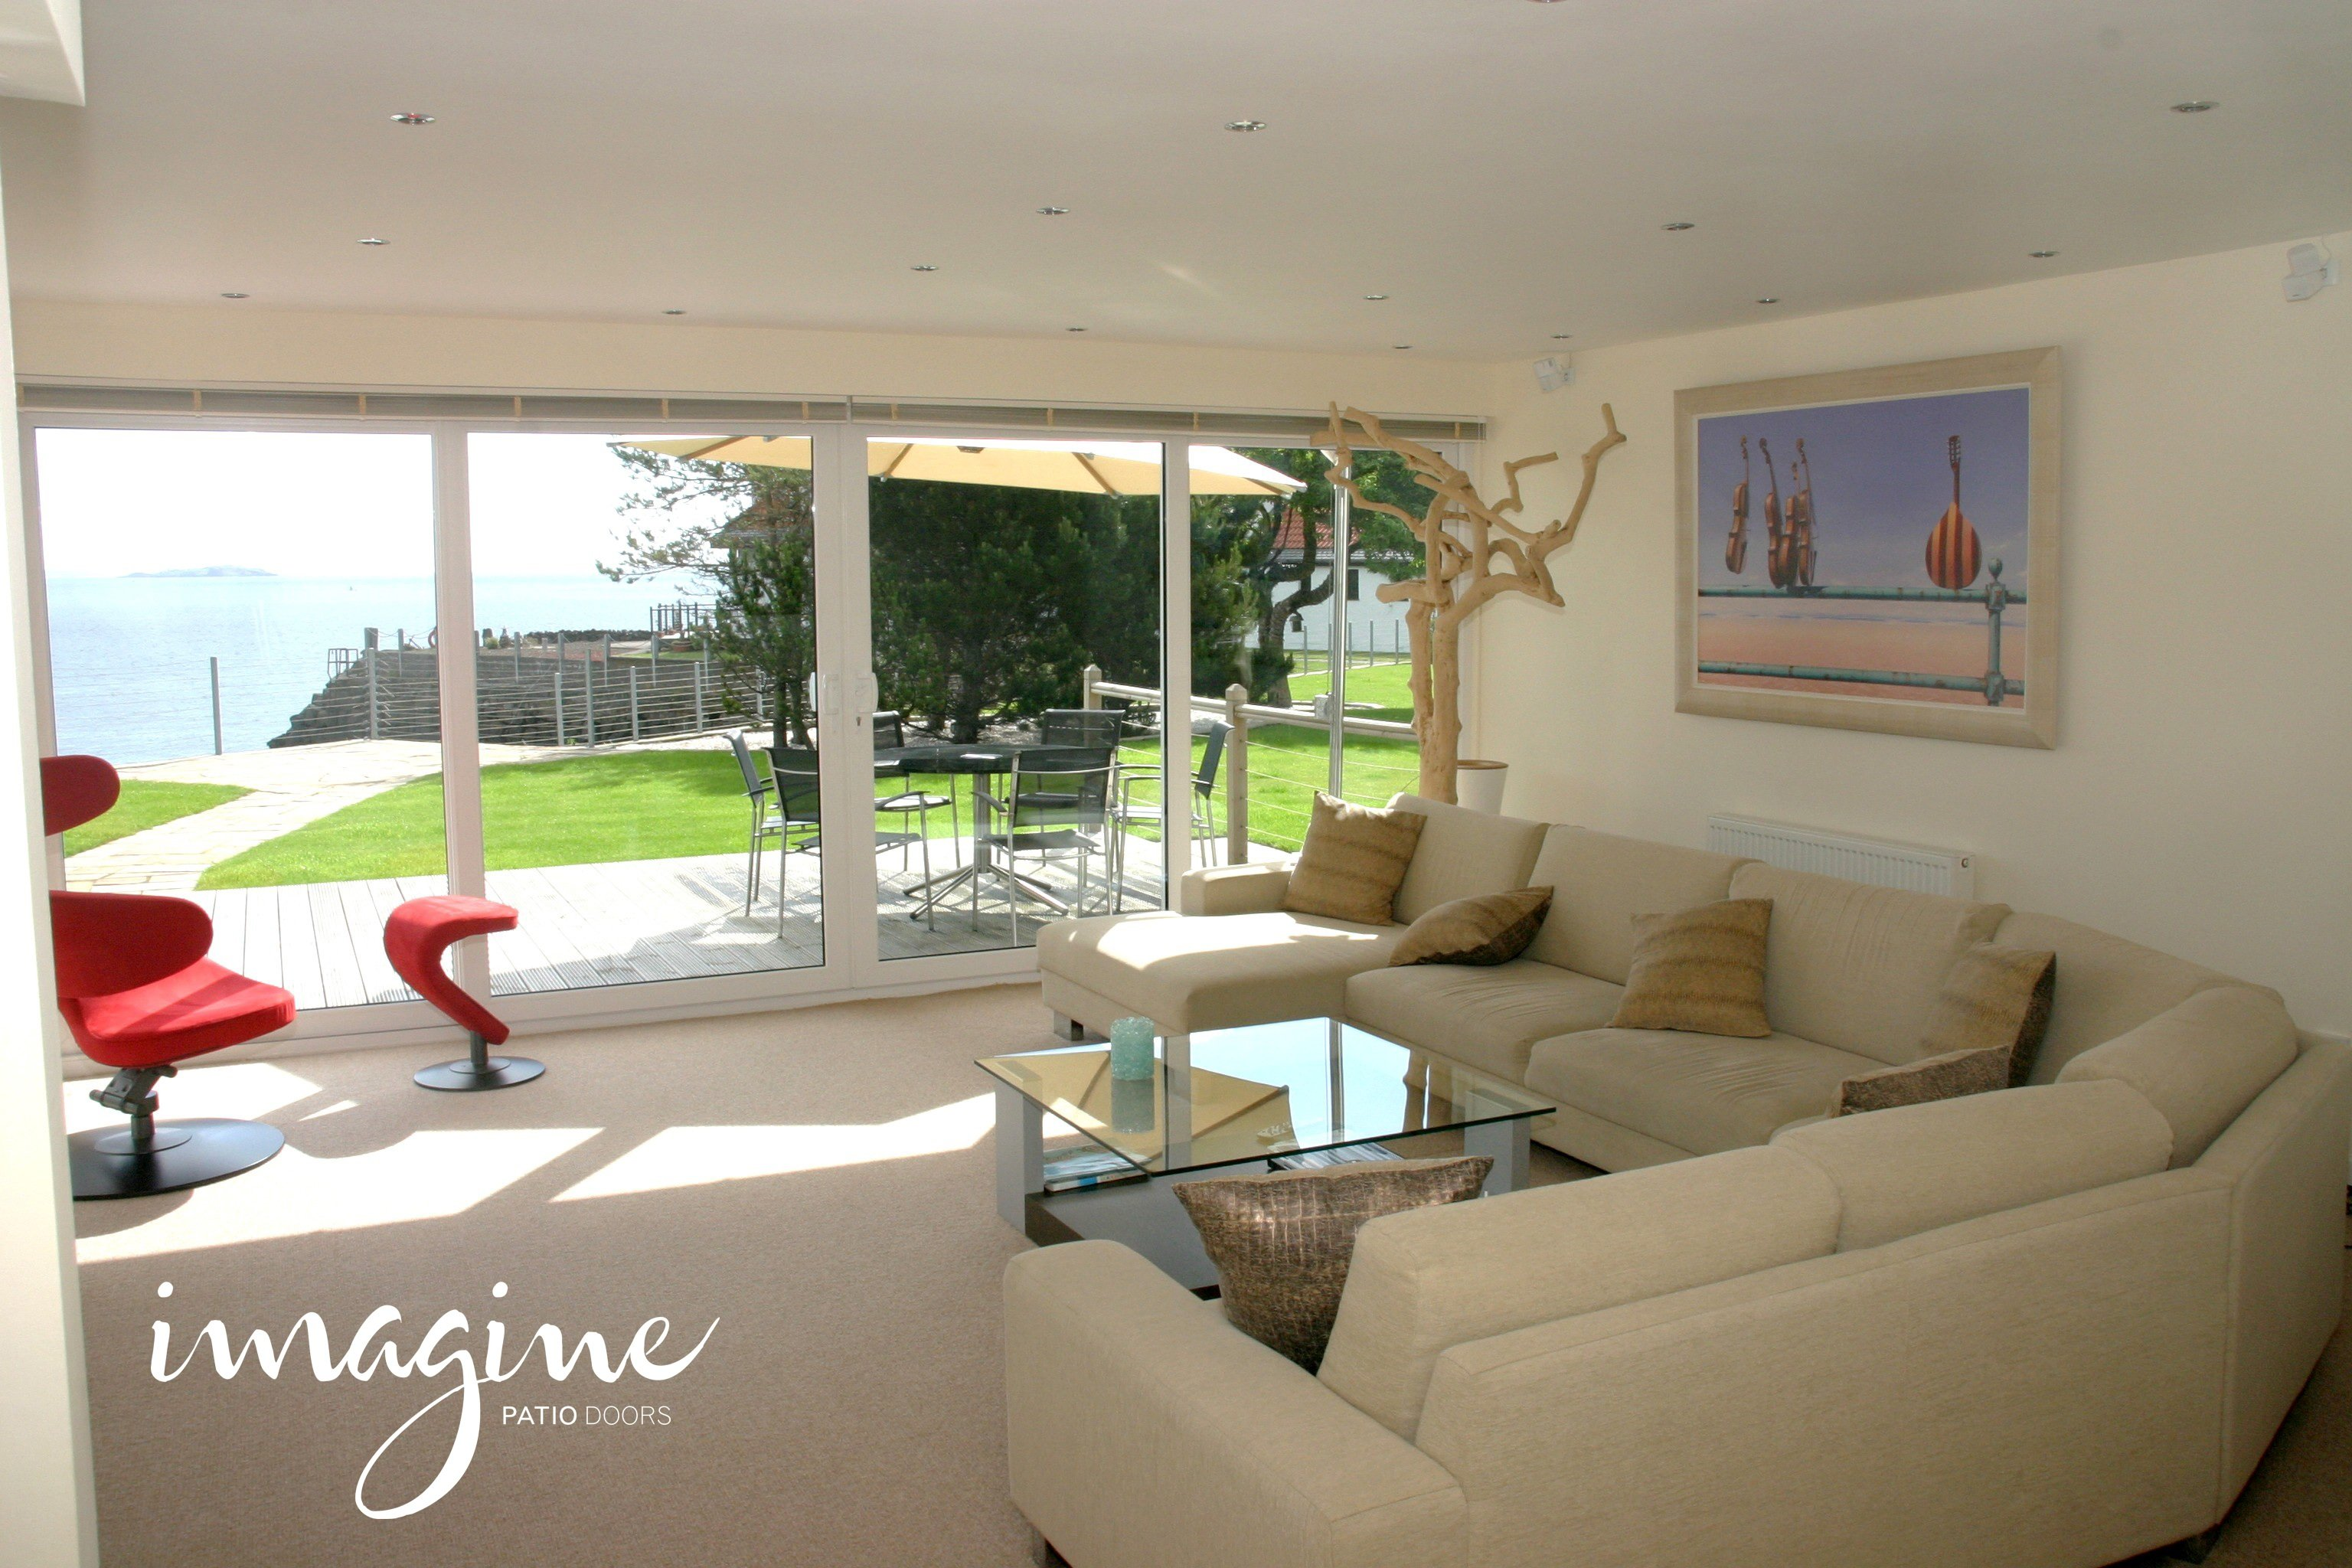 The VEKA UK Group adds a newly-designed Patio Door to its innovative Imagine suite